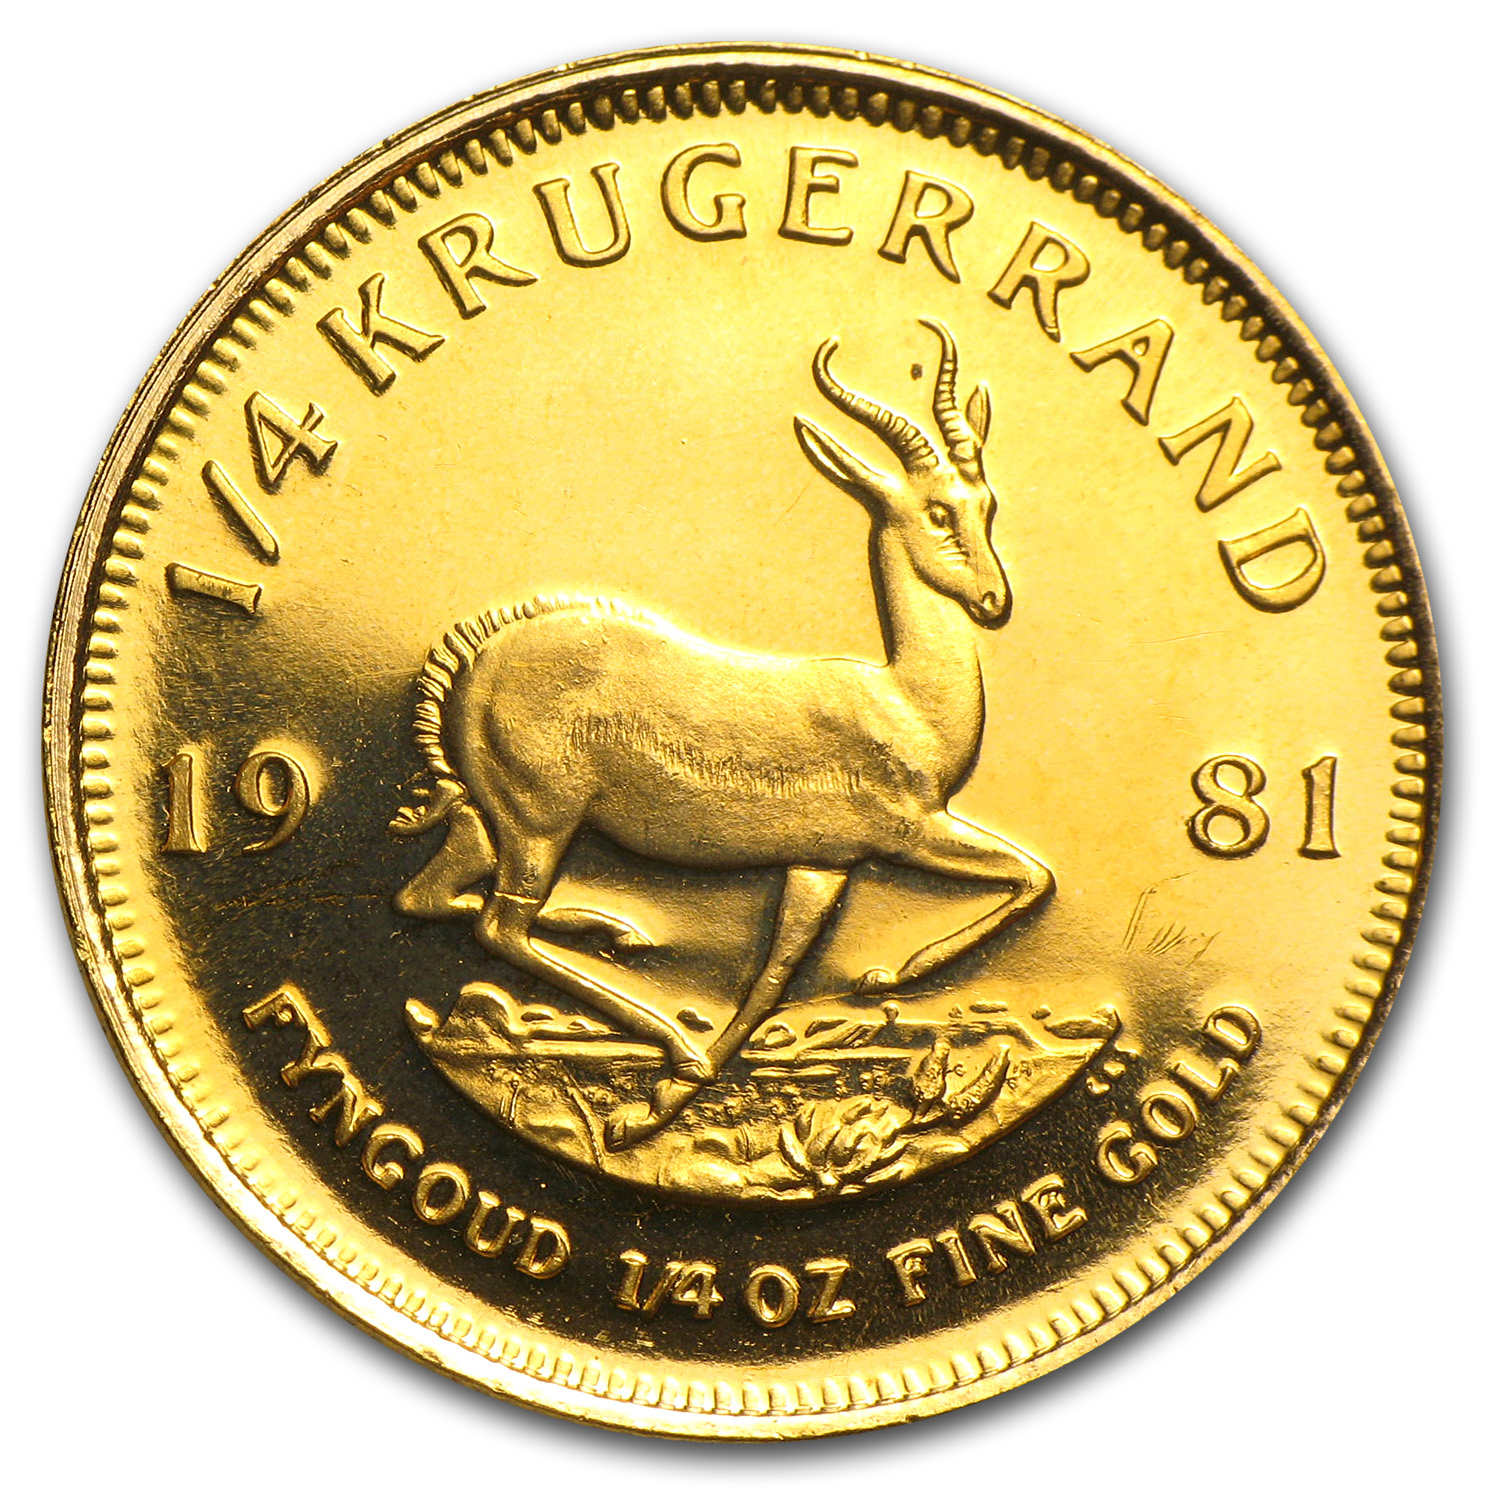 1981 South Africa 1/4 oz Gold Krugerrand Proof